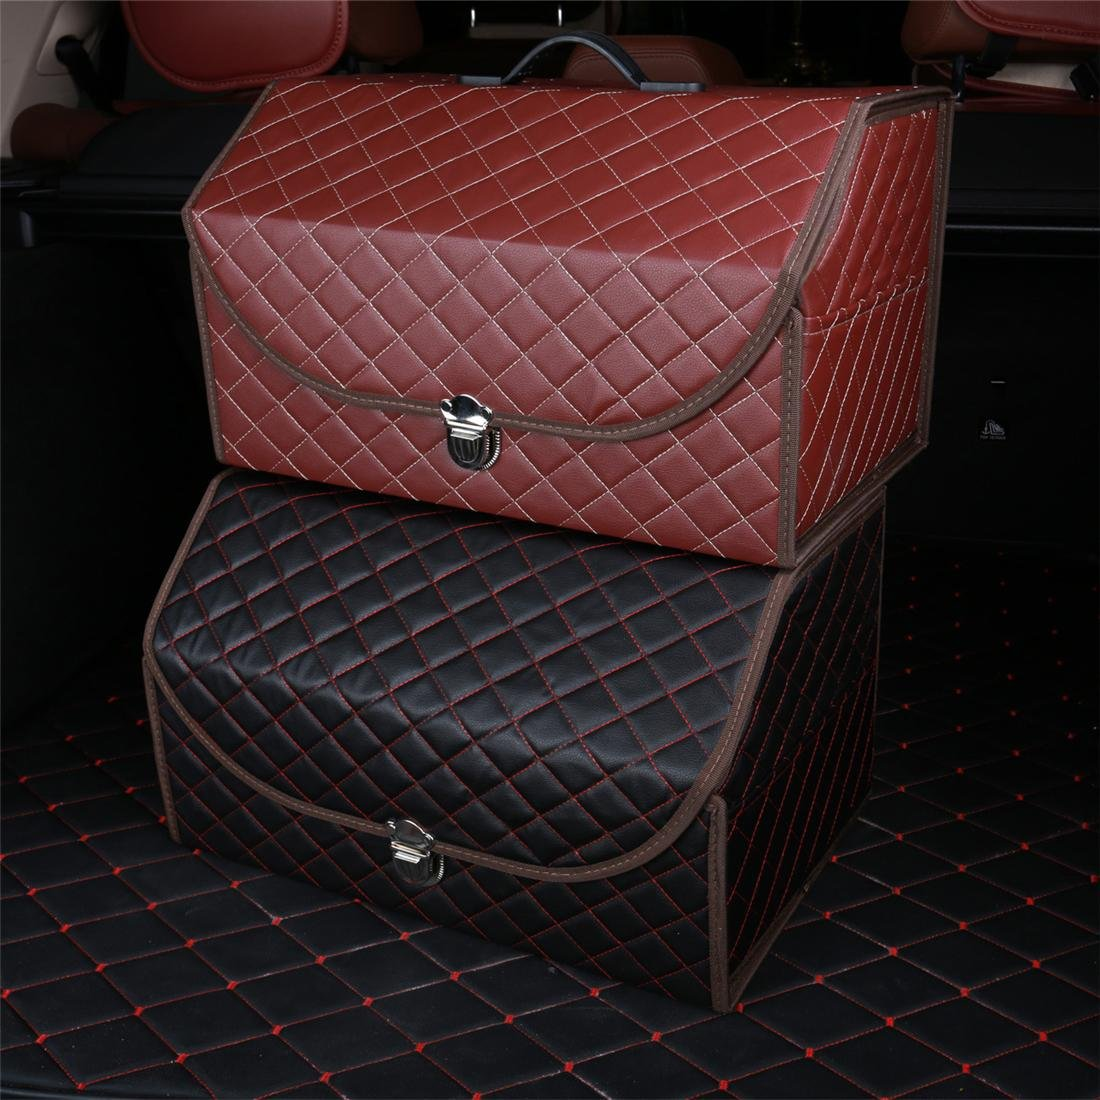 Black 2 Car Trunk Boot Box Foldable SUV Leather Storage Organiser Collapsible Auto Minivan Truck Shopping Travel Holder With Lid Handle